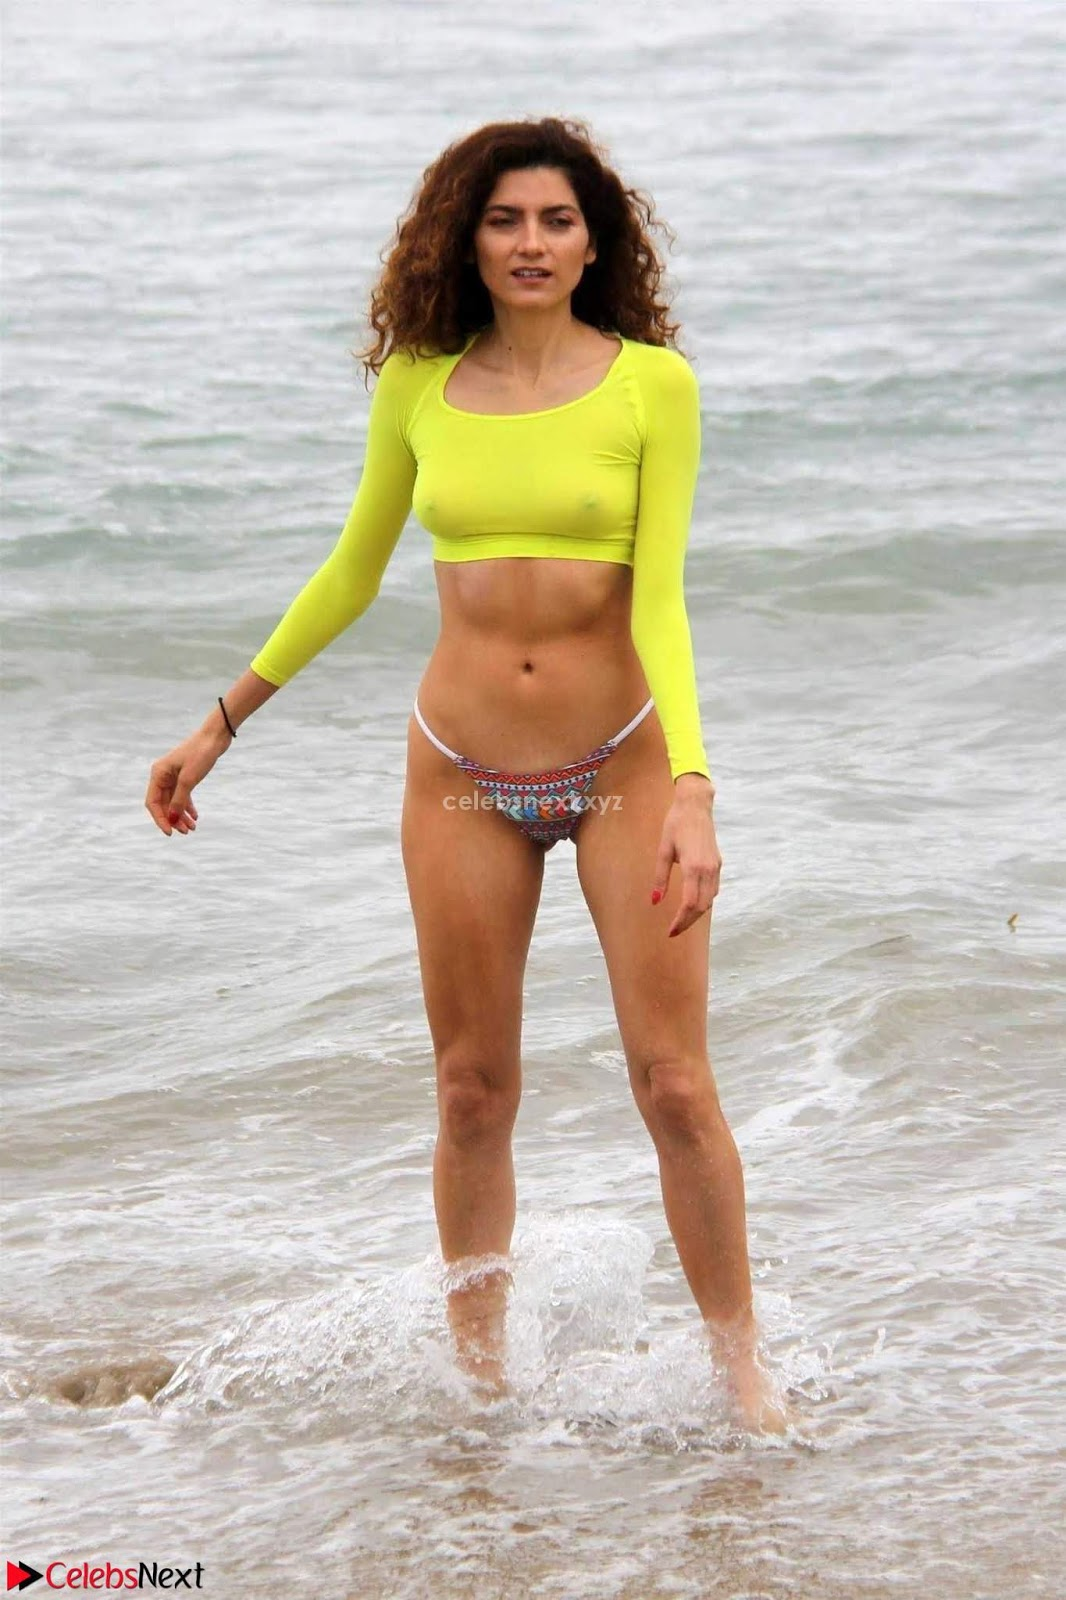 Blanca Blanco  in Swimsuit Nipples Clearly Visible June 2018 ~ CelebsNext.xyz Exclusive Celebrity Pics